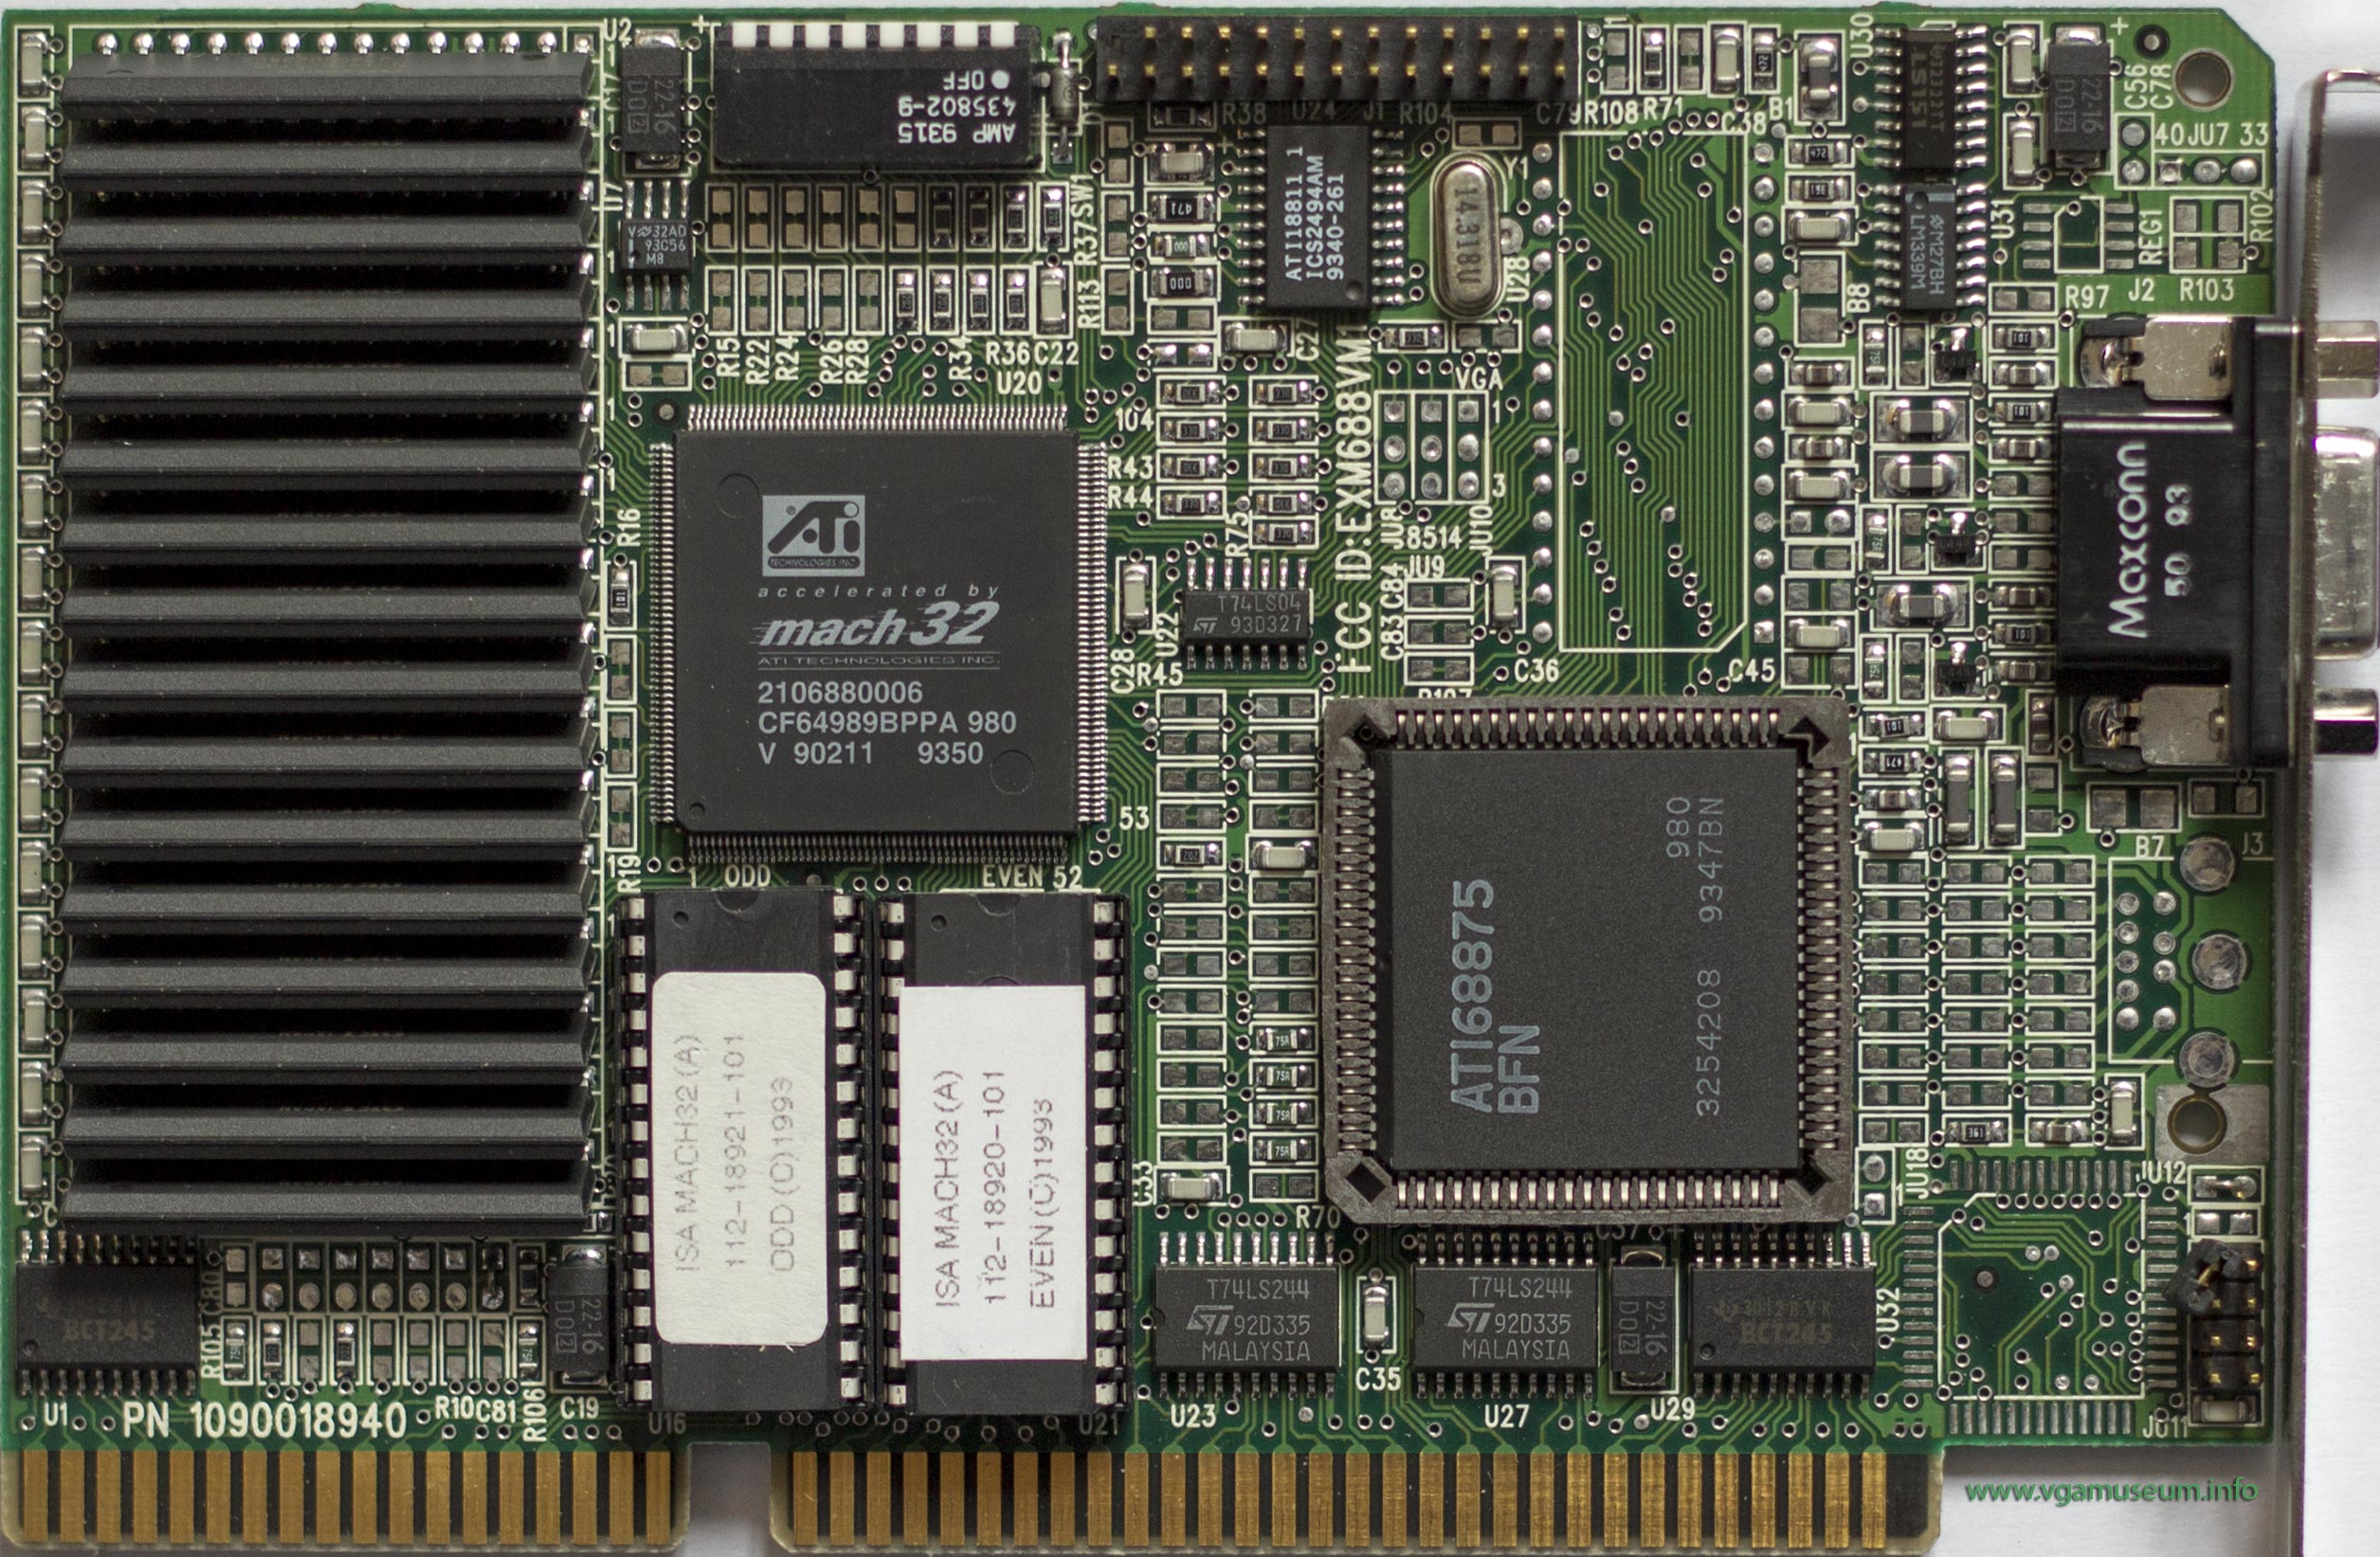 ATI MACH32 AX PCI WINDOWS DRIVER